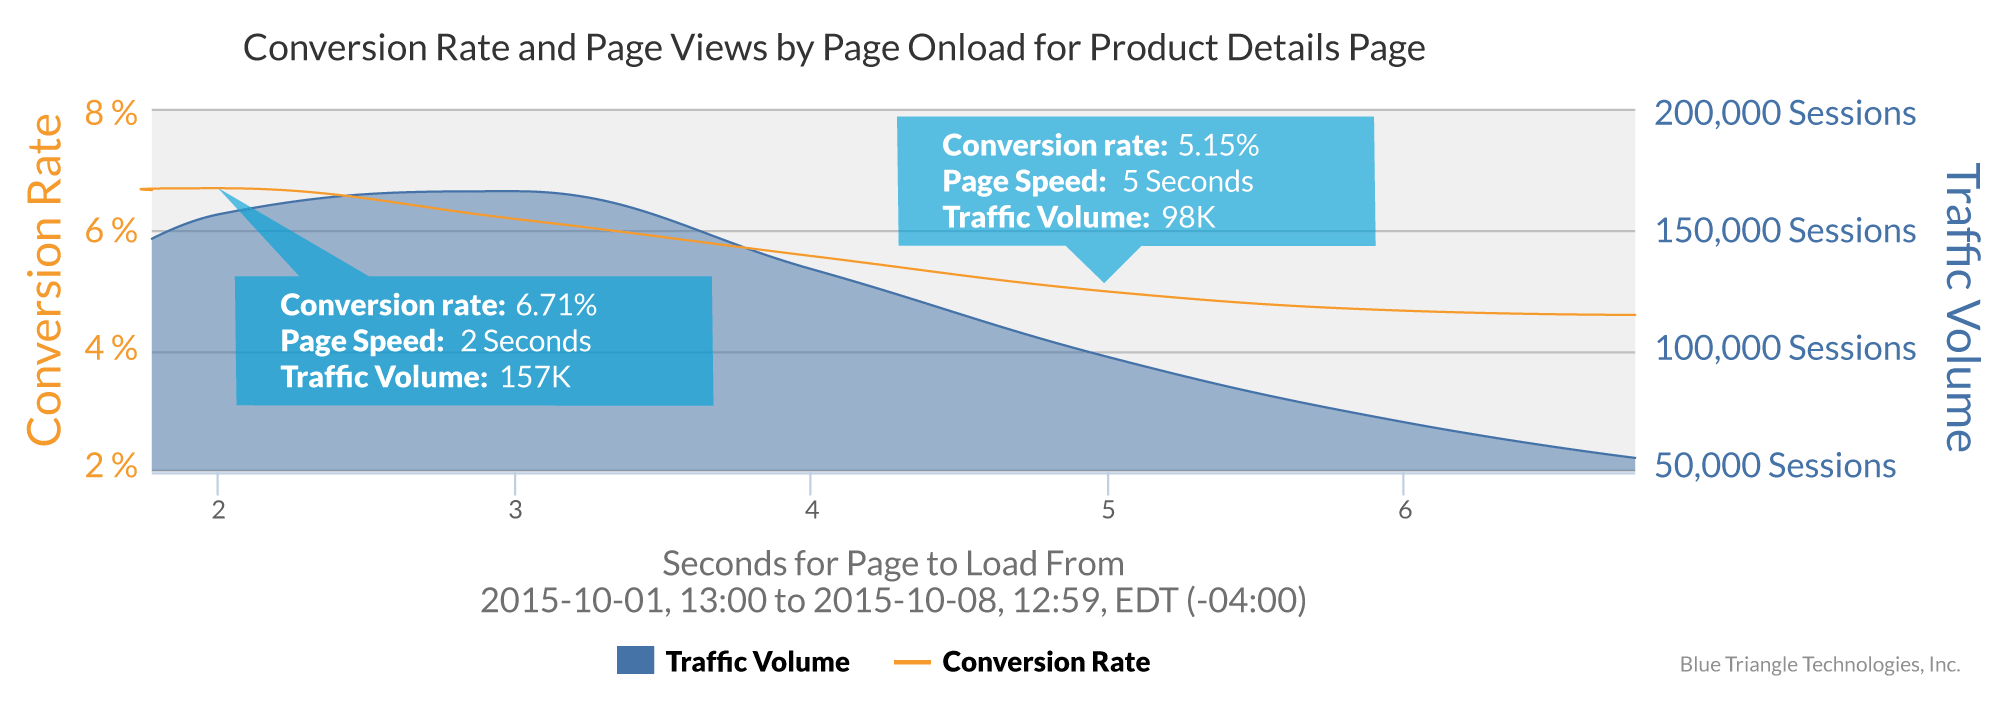 conversion-rate-and-page-views-by-prt